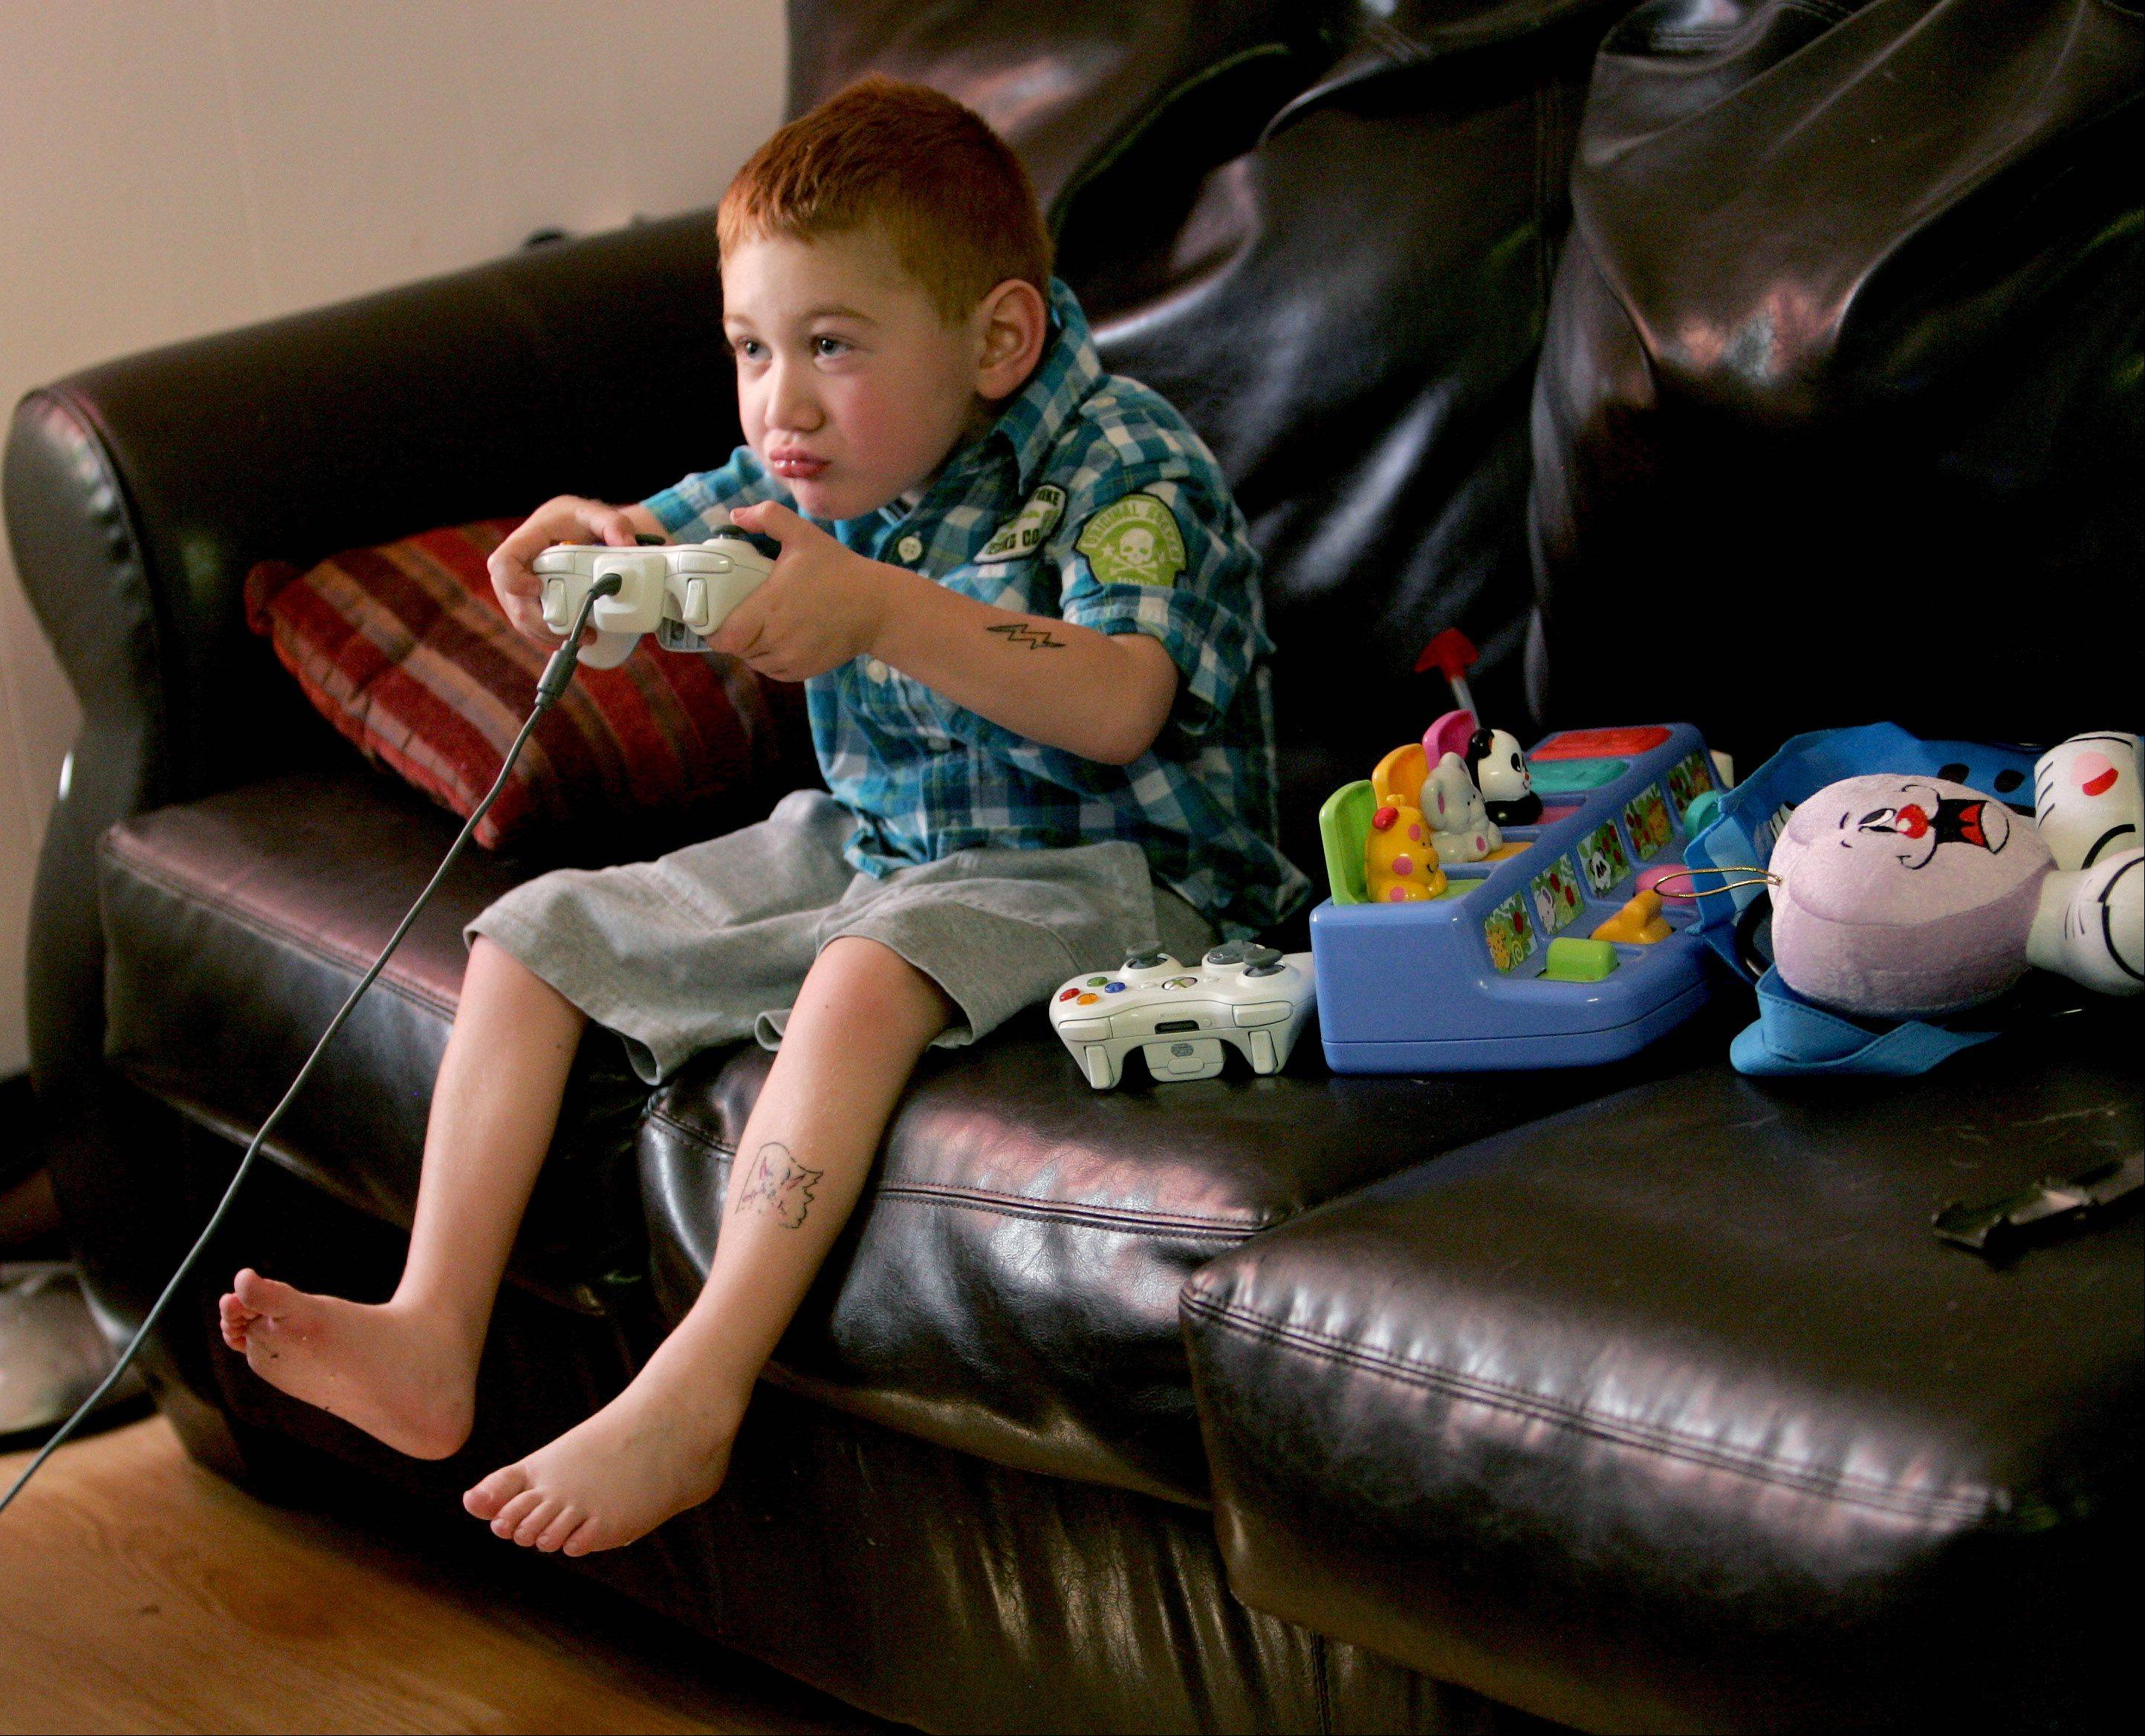 Heart transplant recipient Tim Grobart, 5, of Lombard, is now back at home and playing video games after a the successful surgery.